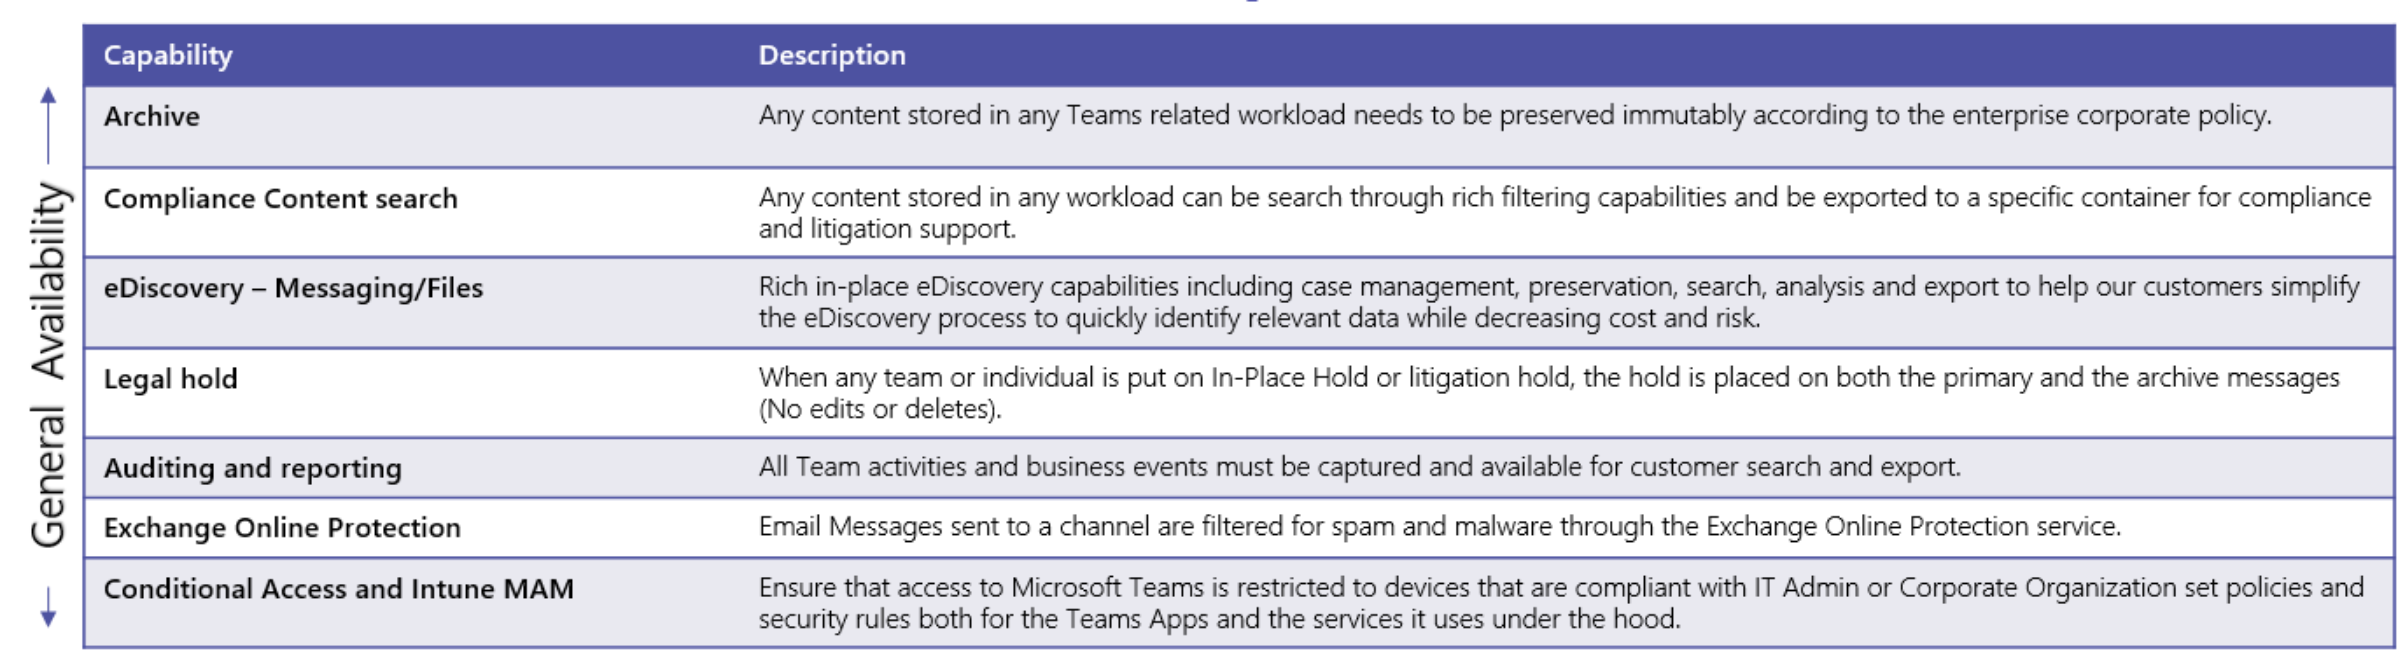 Office 365 security and compliance exchange online protection 02 - Top Features Of Microsoft Teams Information Protection In Office 365 Microsoft Tech Community